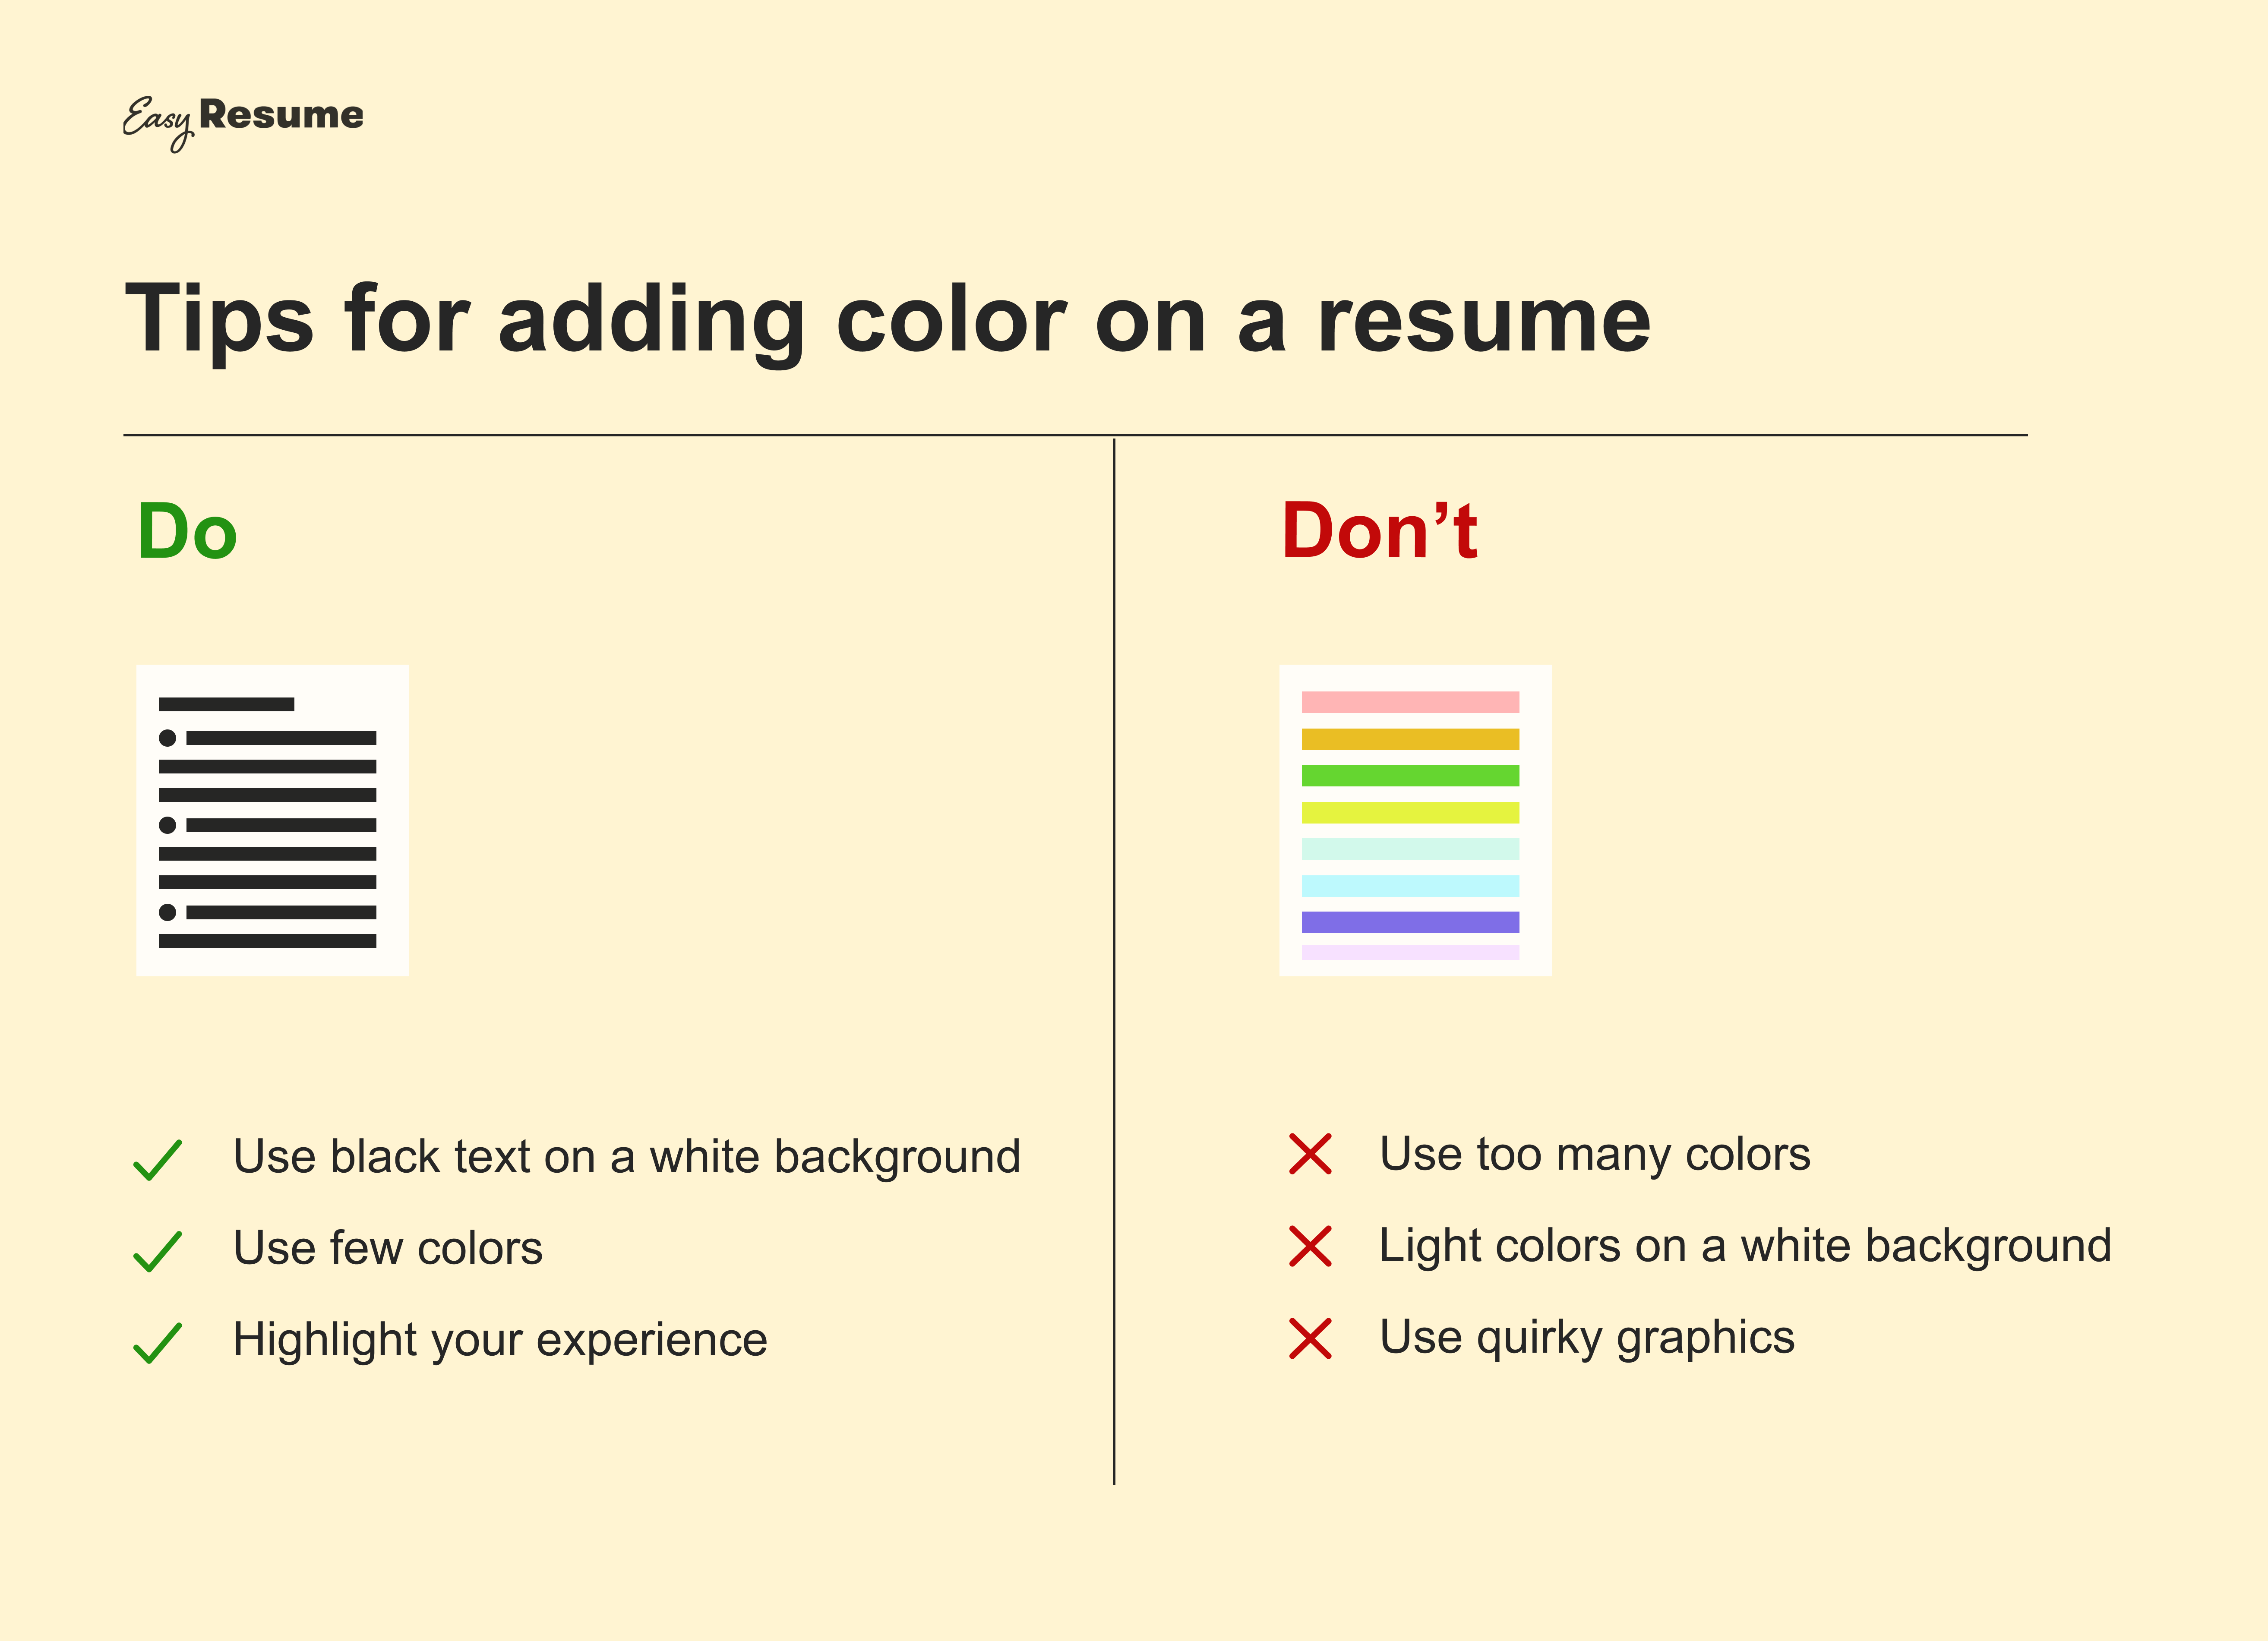 Tips for adding color on a resume